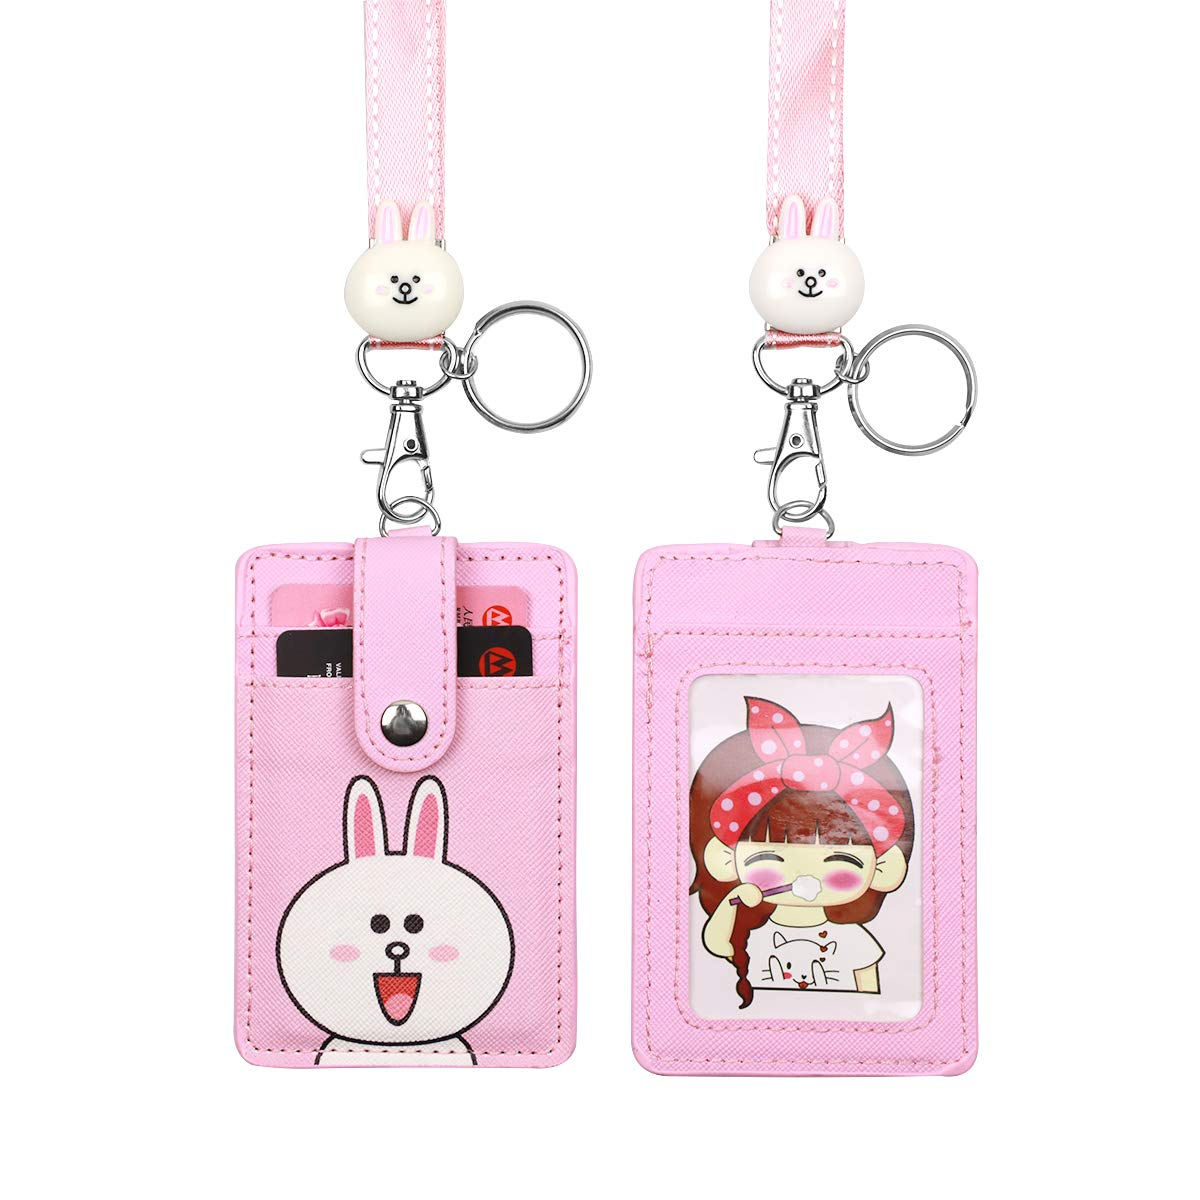 Cute Neck Pouch Card Case ID Badge Holder Cartoon Lanyard Keychain for Teens